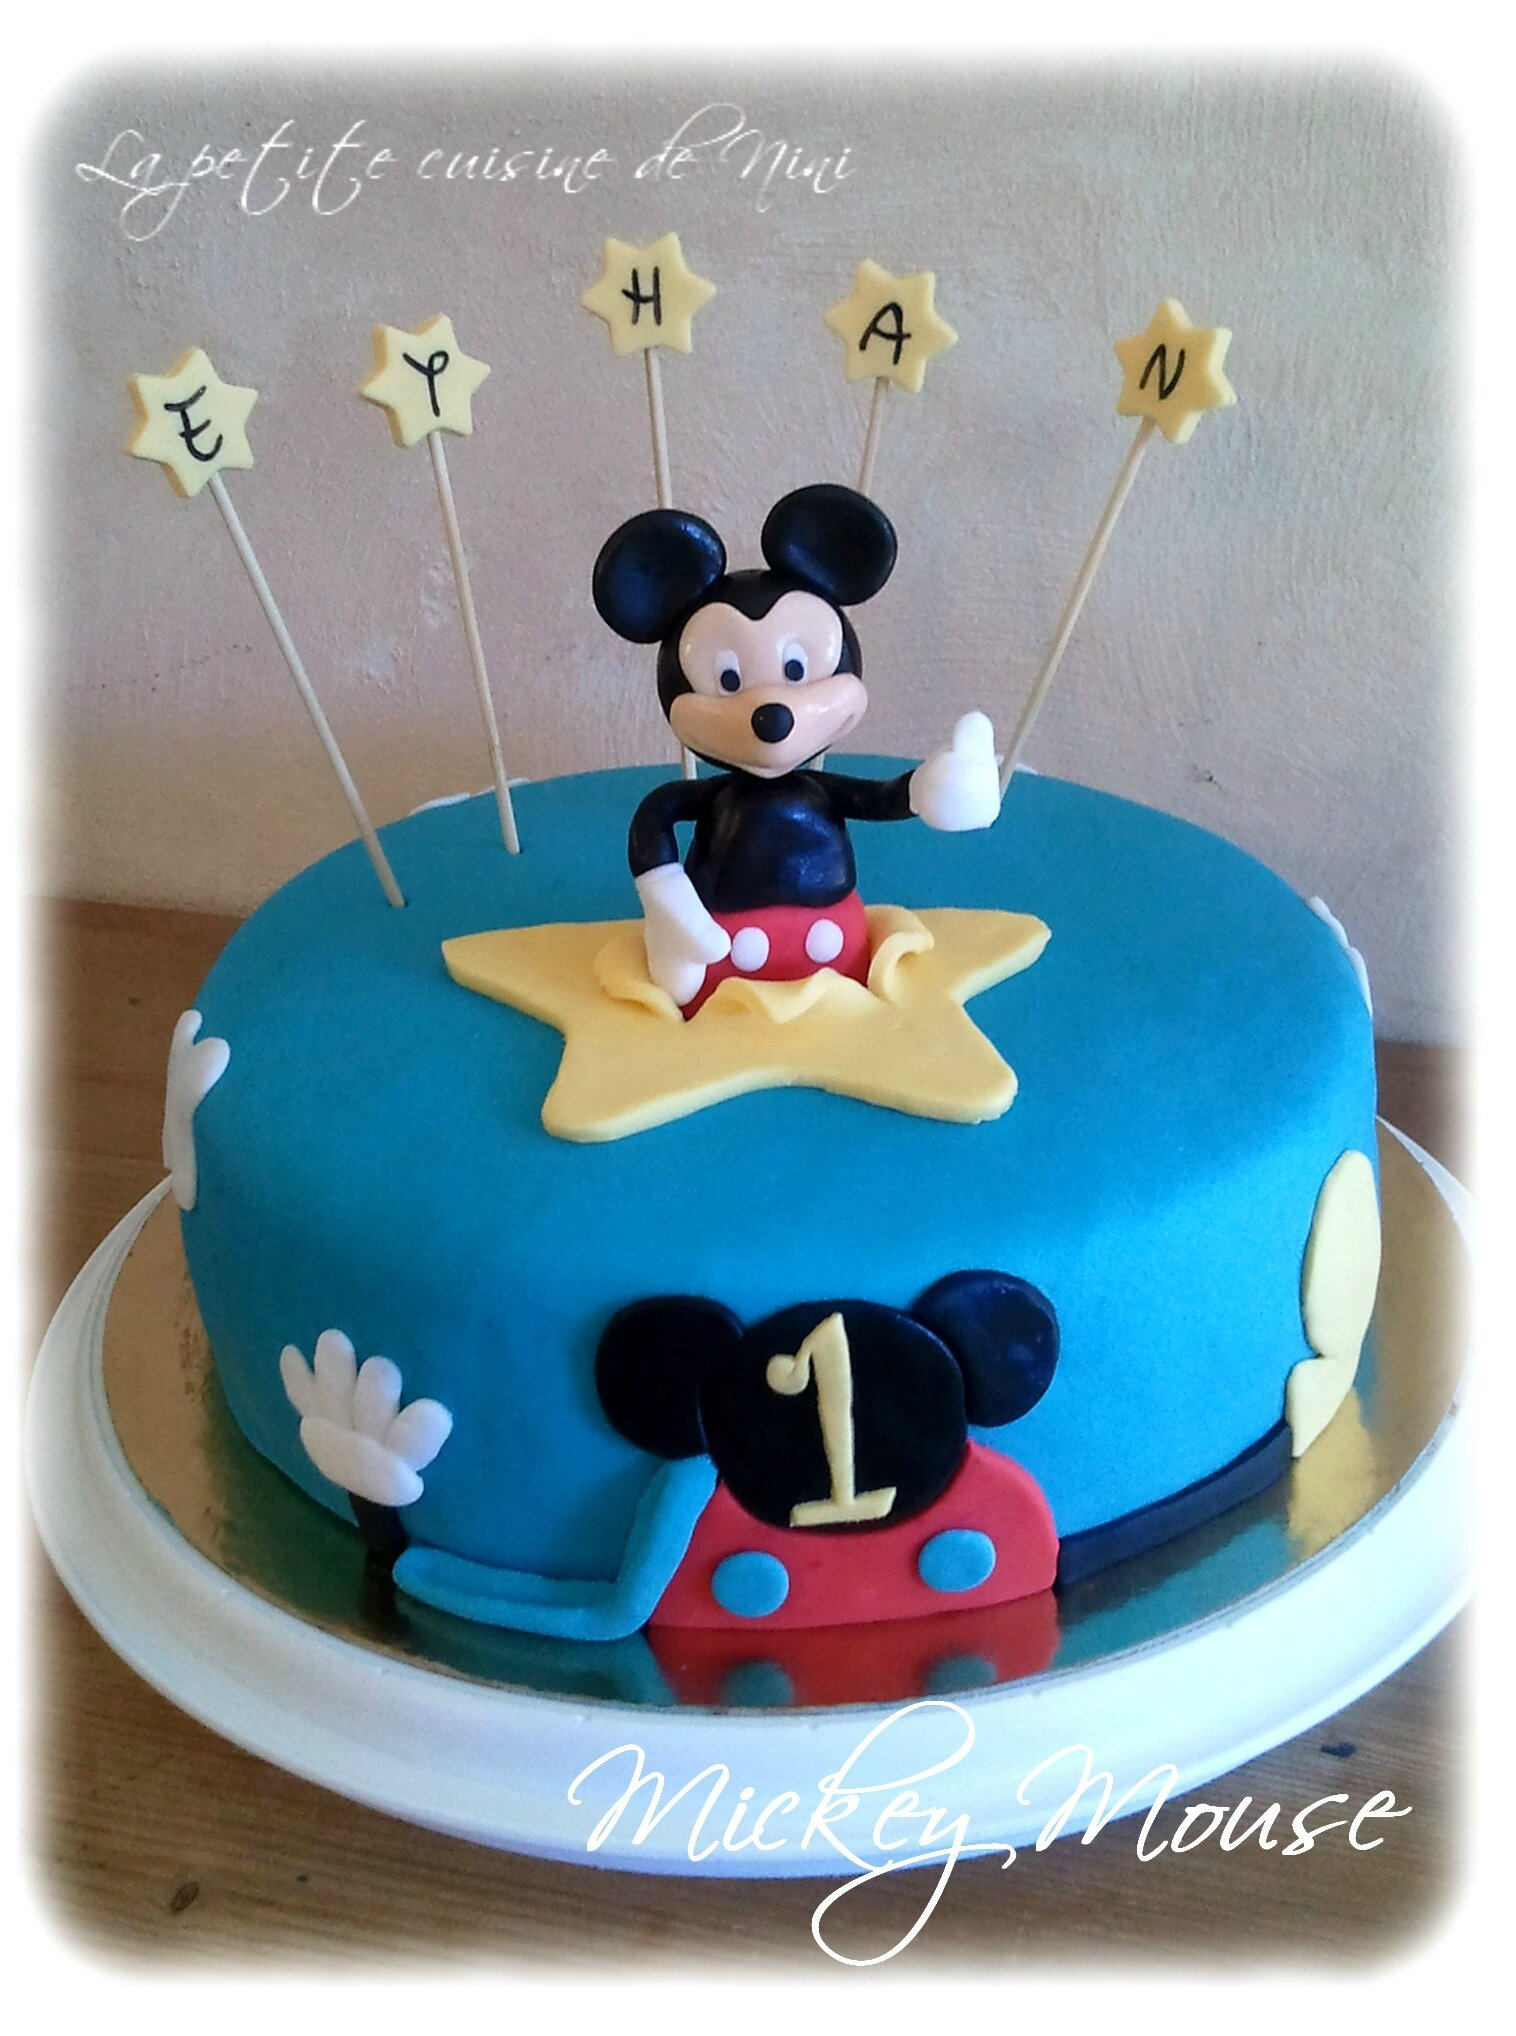 Comment faire un gateau d anniversaire facile fashion designs - Gateau d anniversaire facile ...